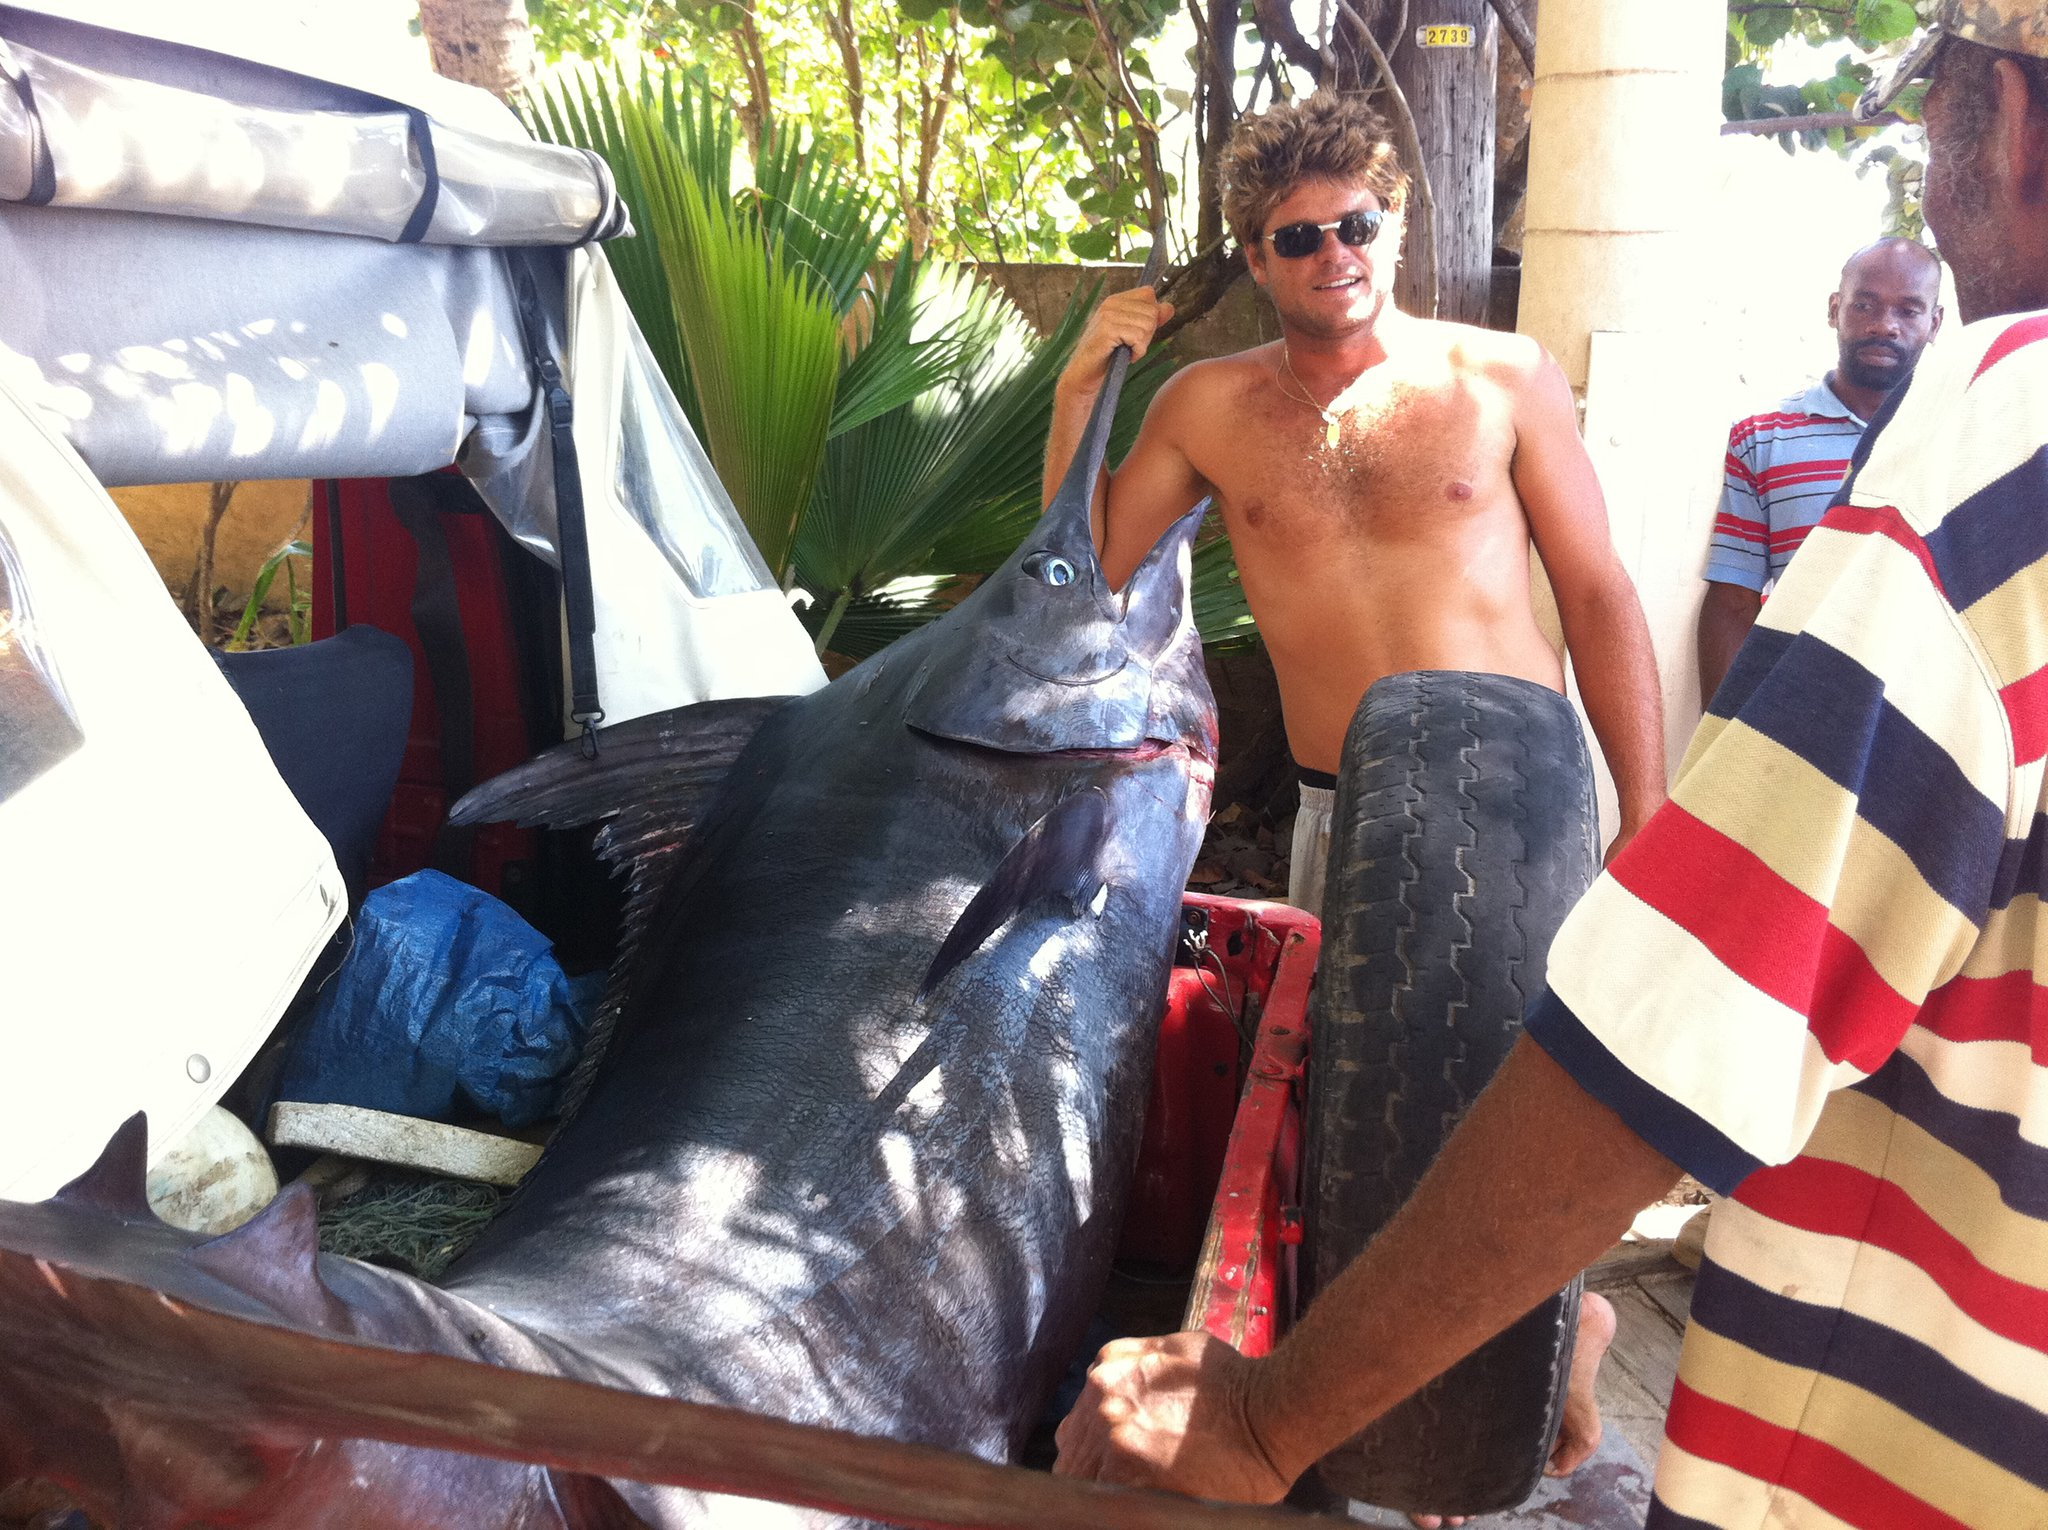 And one more Marlin for Sebastien